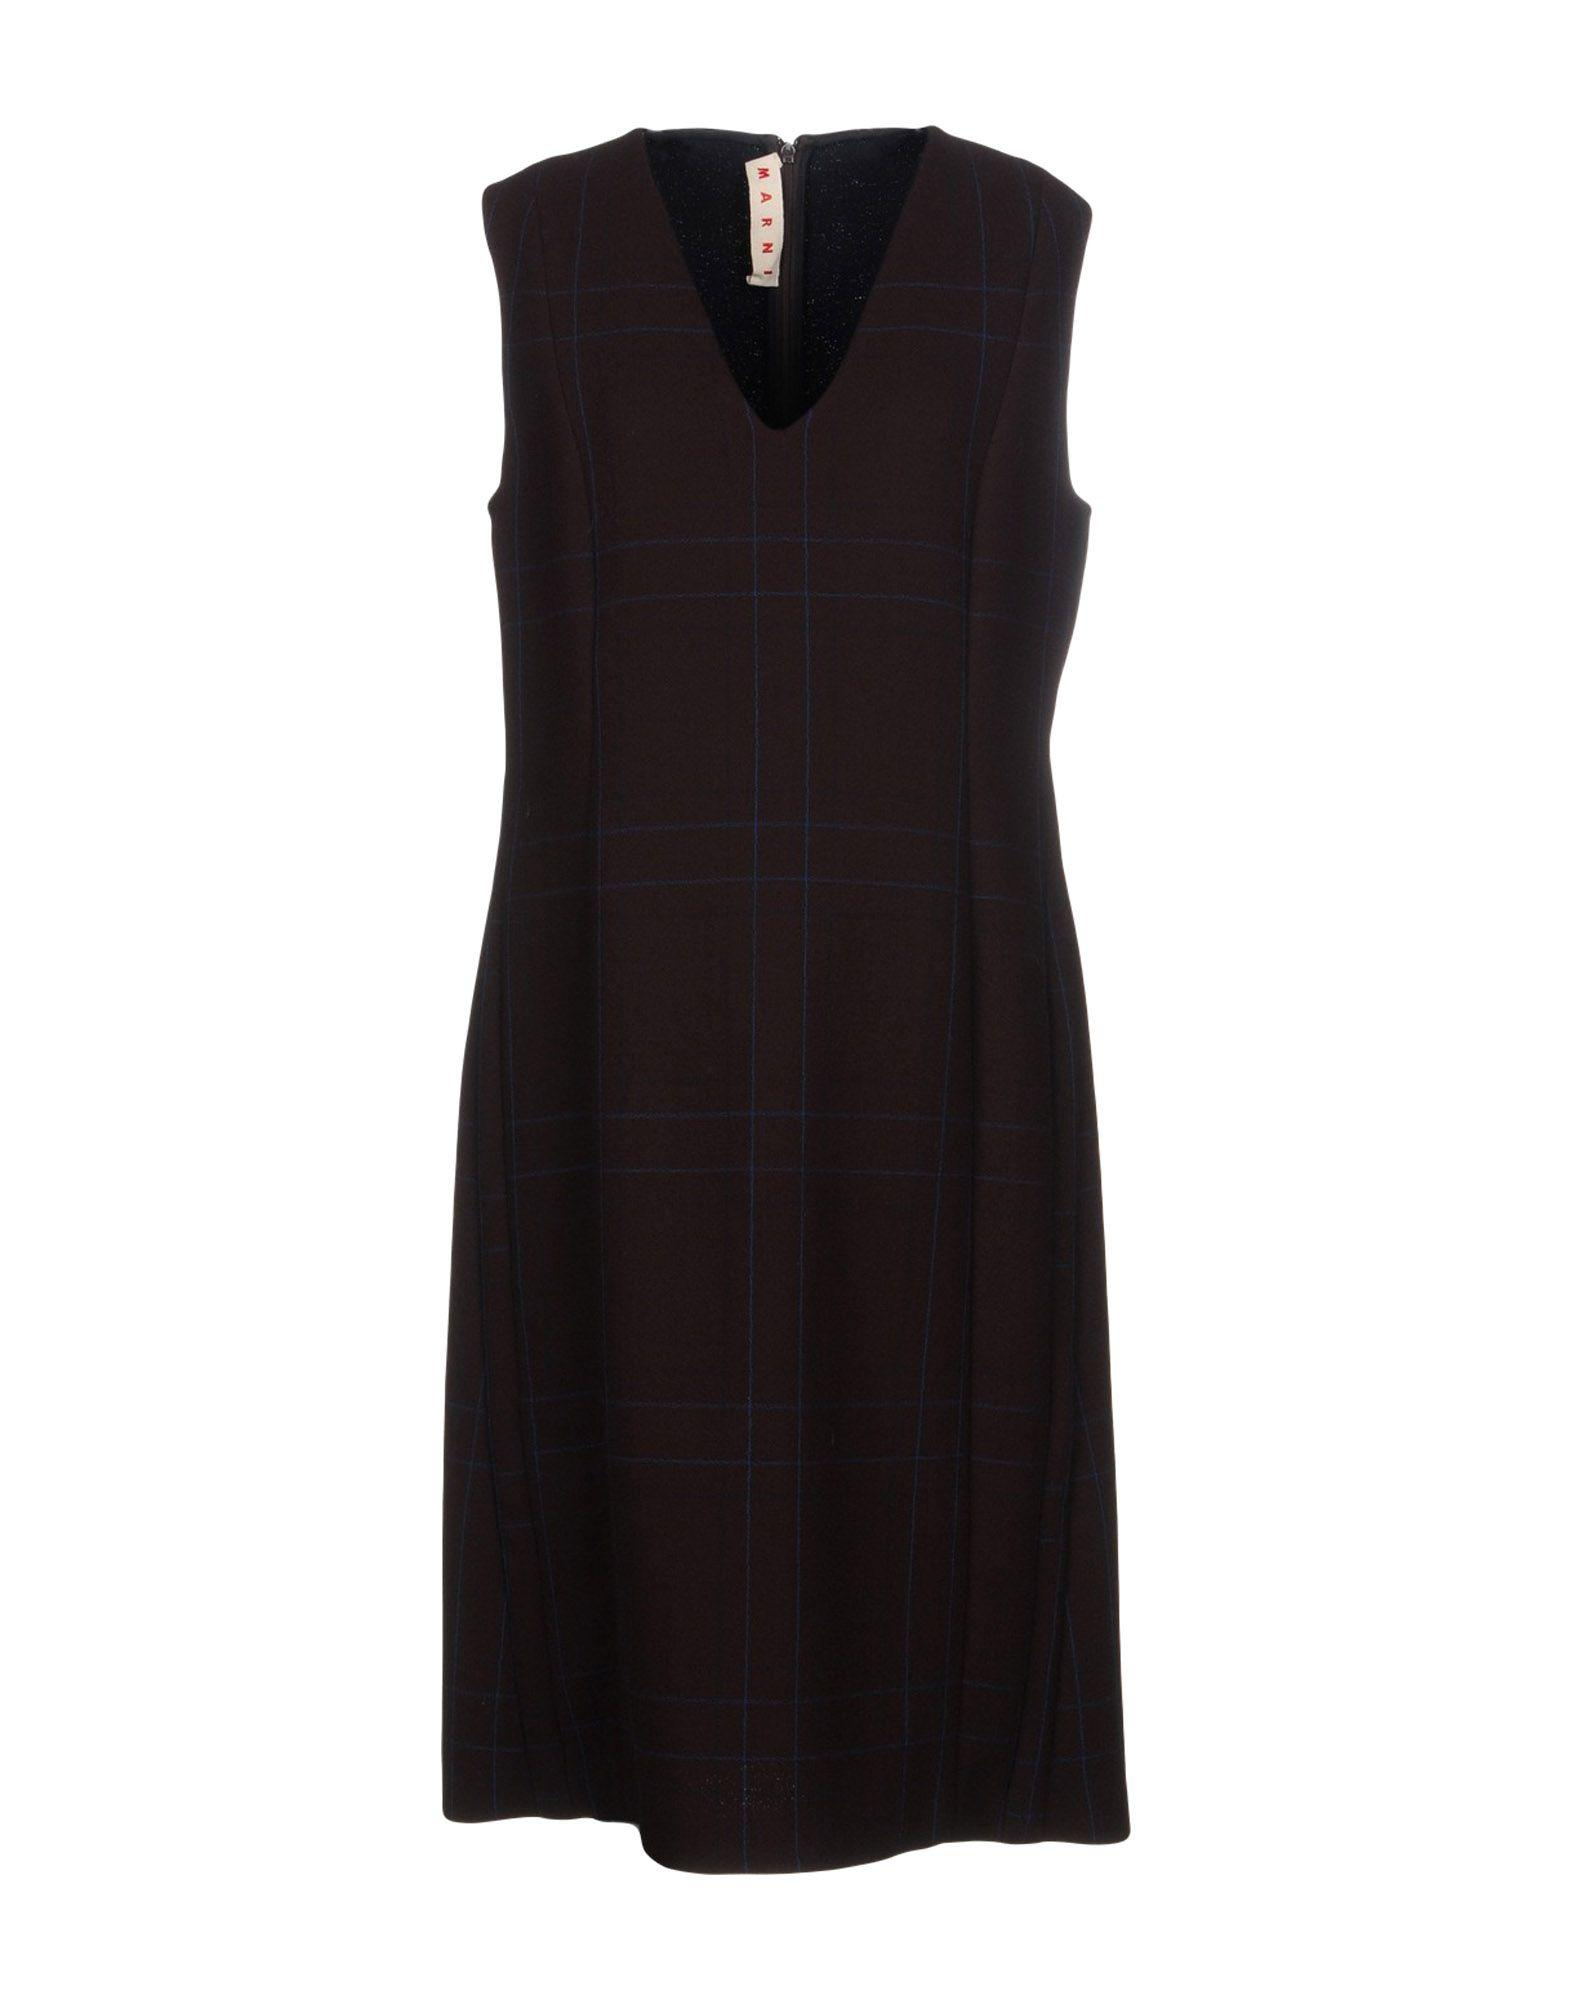 Marni Knee-length Dresses In Cocoa